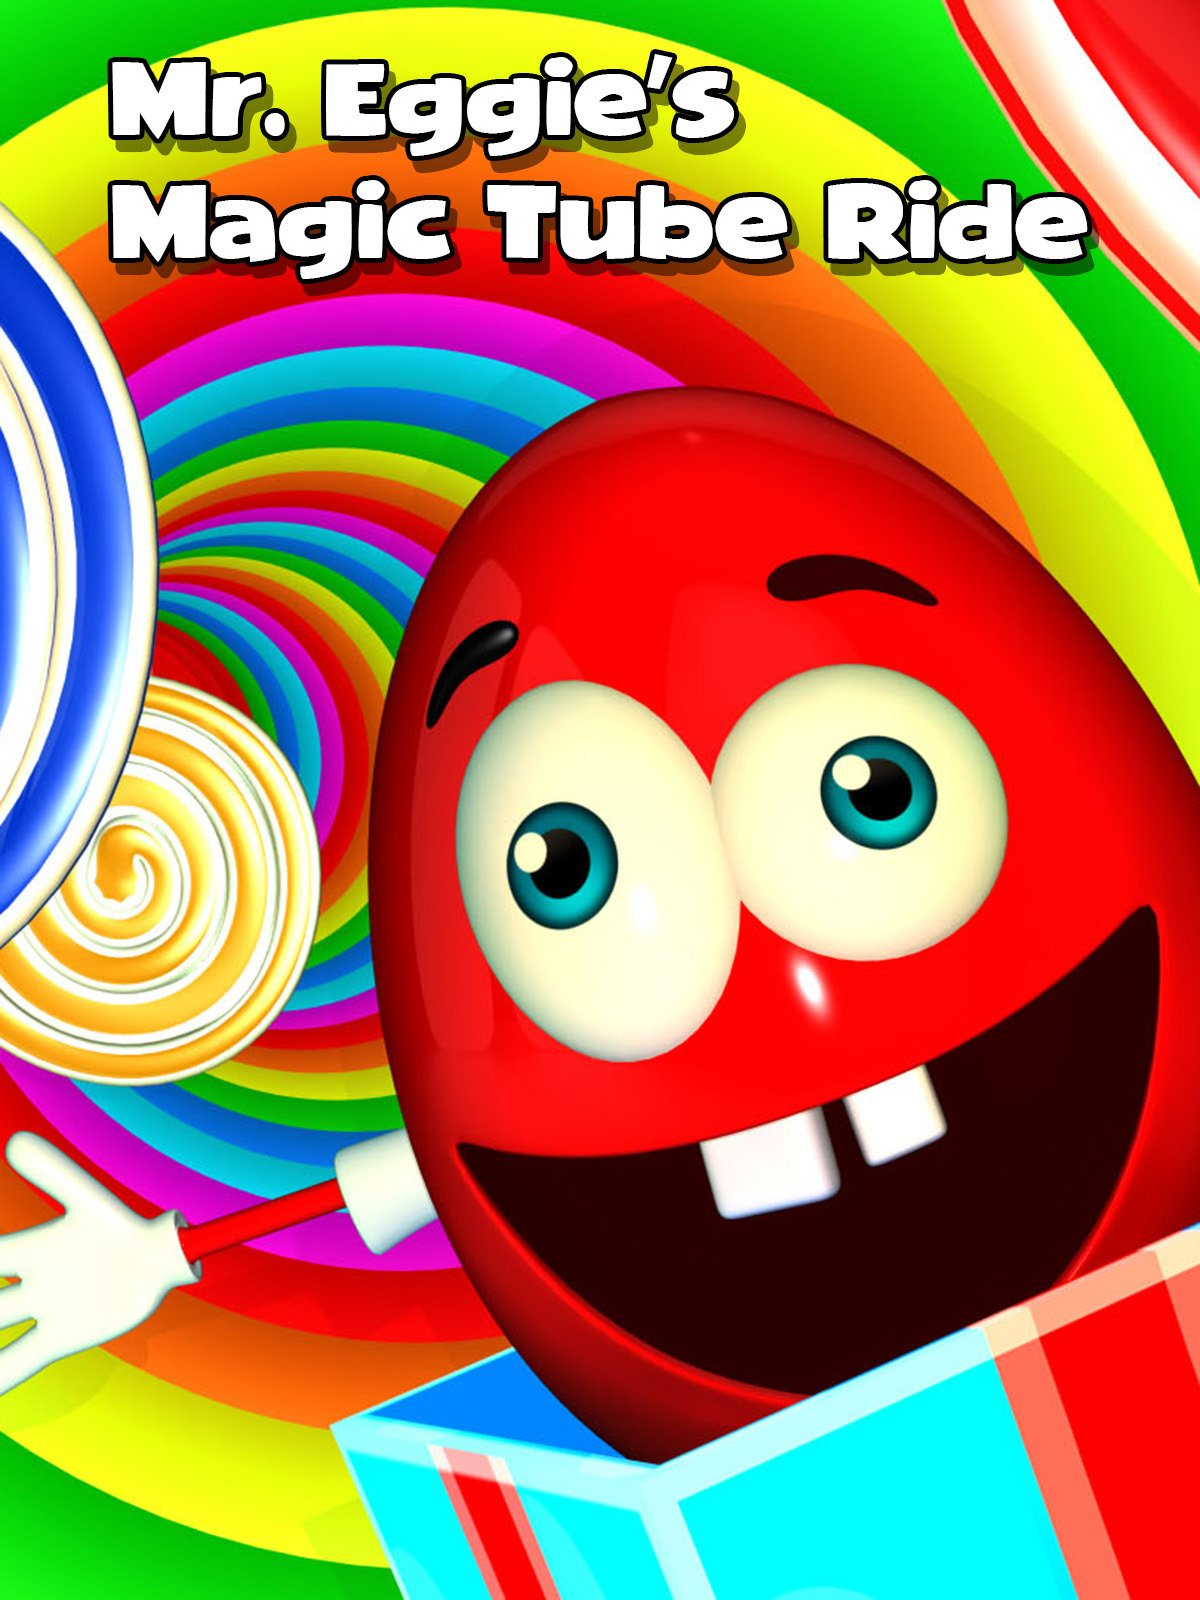 Mr. Eggie's Magic Tube Ride